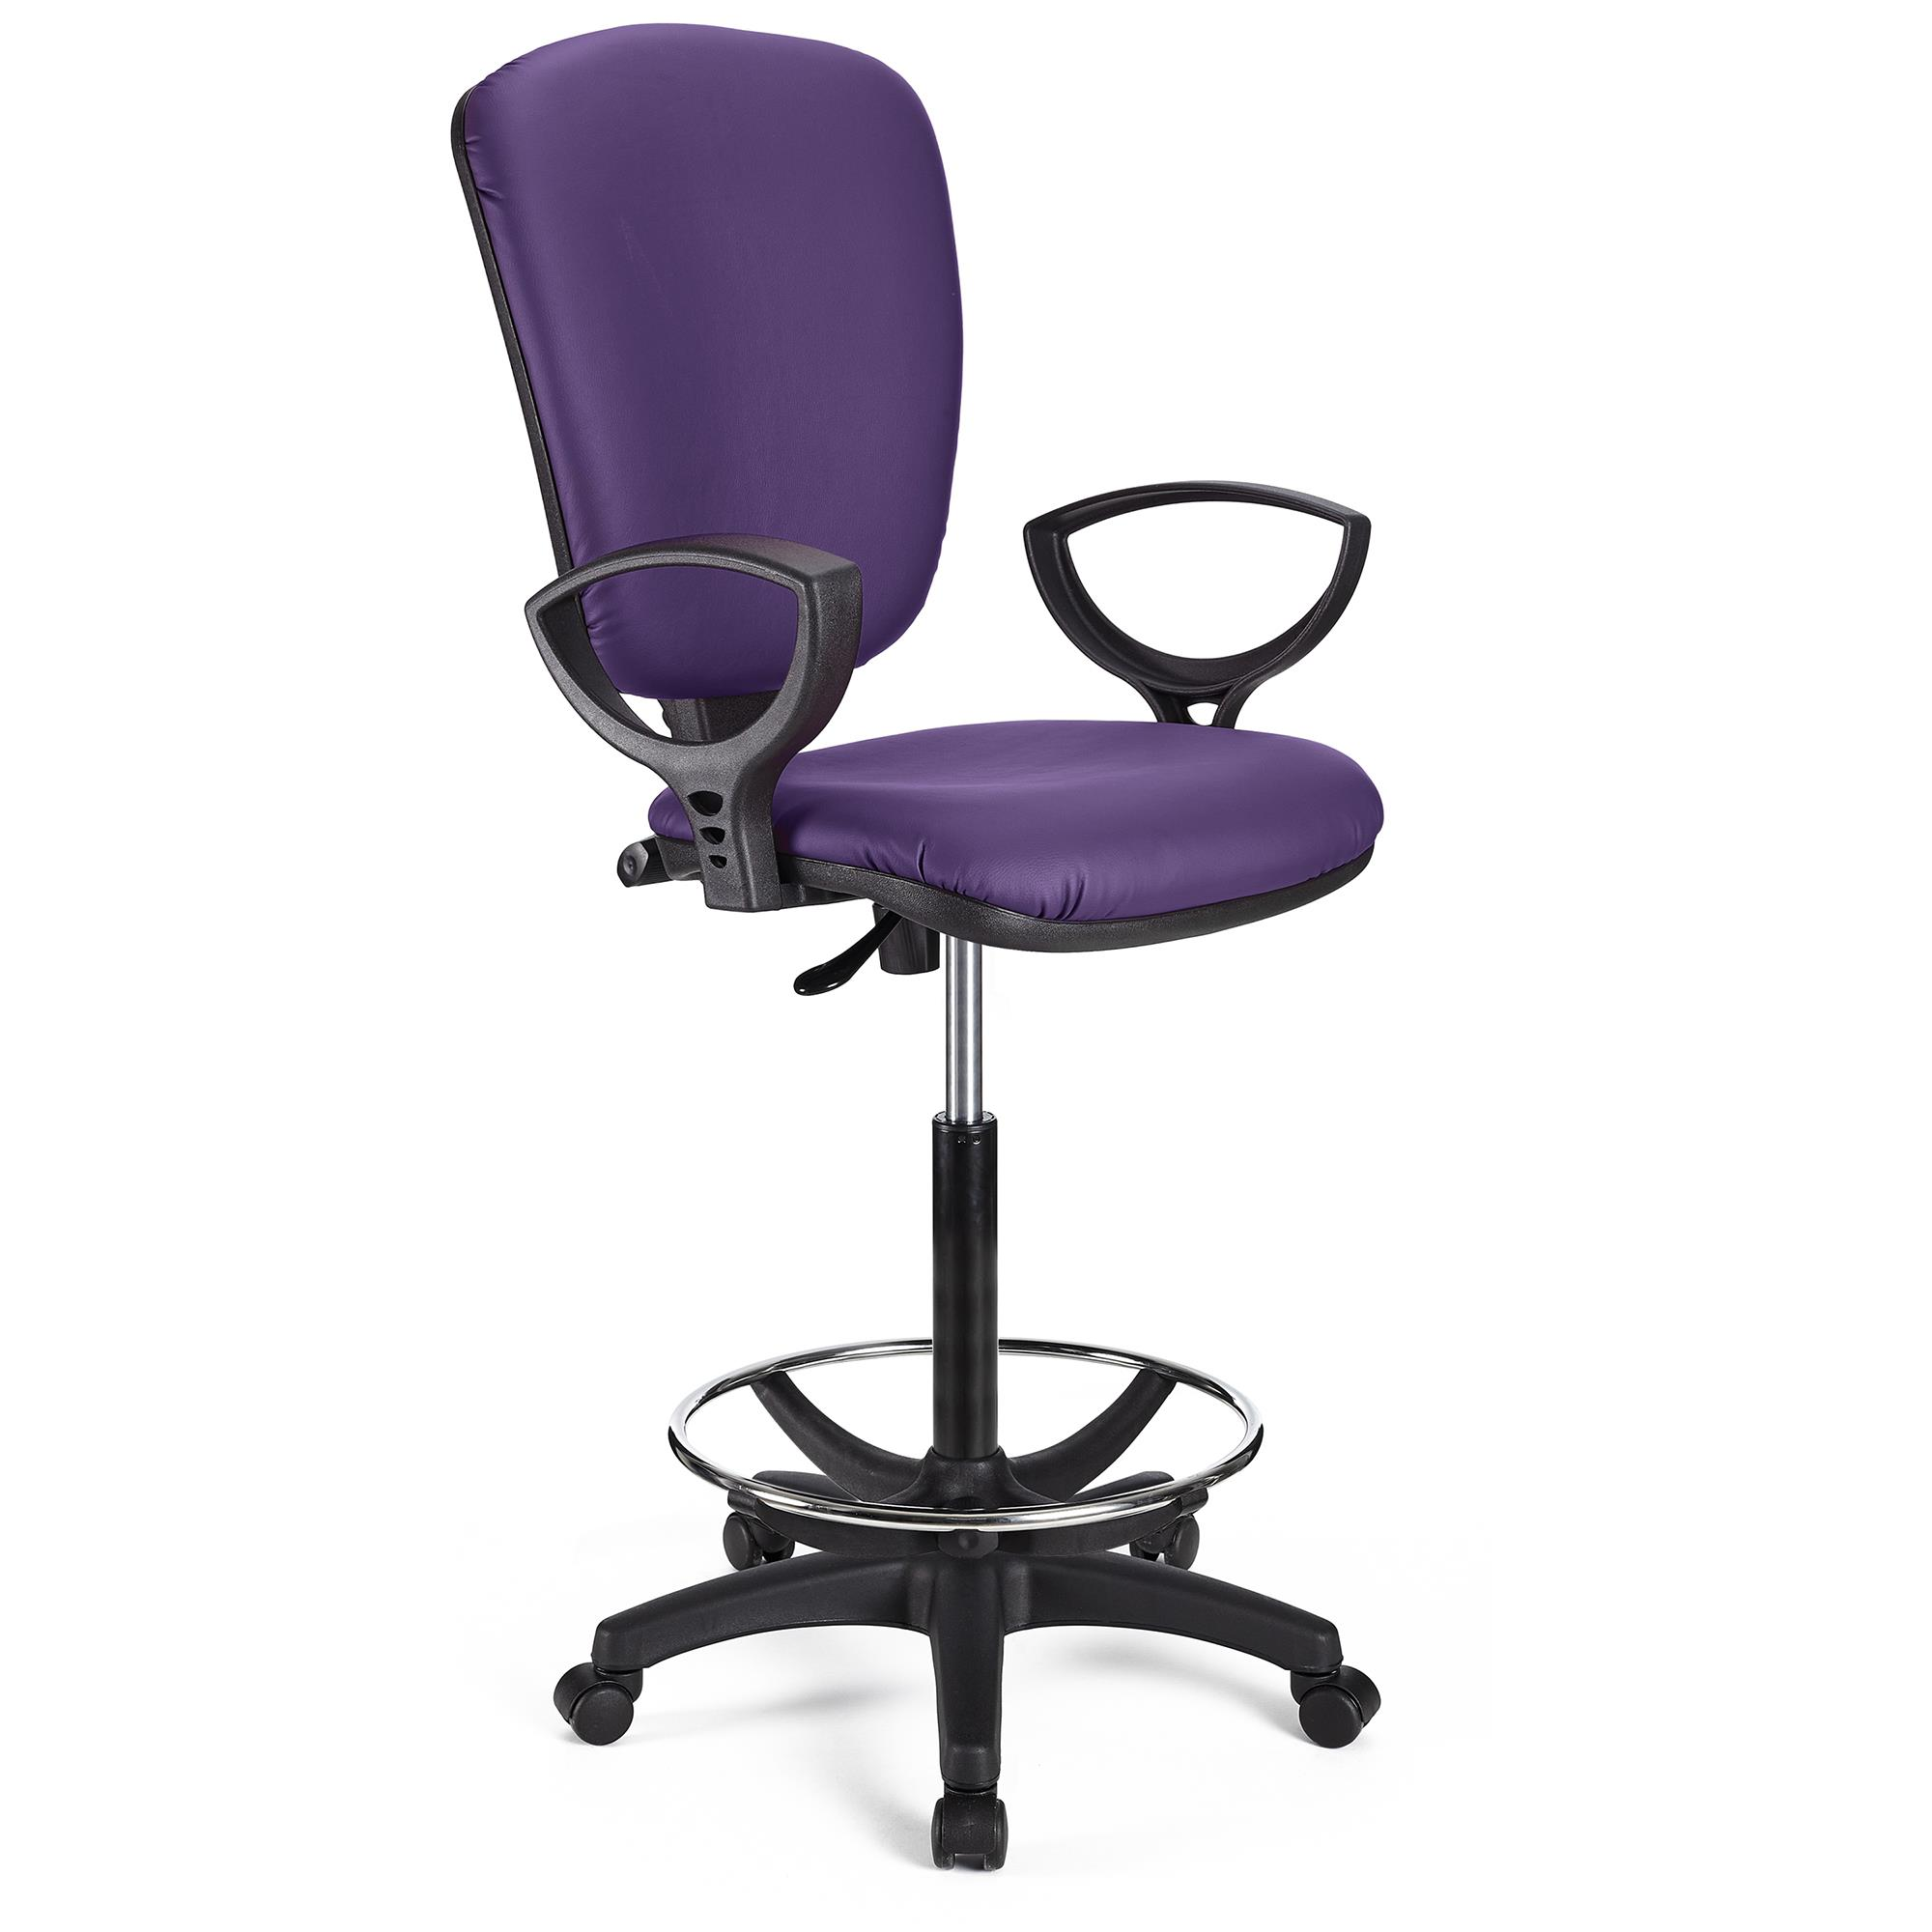 Tabouret de Travail CALIPSO CUIR, Dossier Ajustable, Grand Rembourrage, Violet